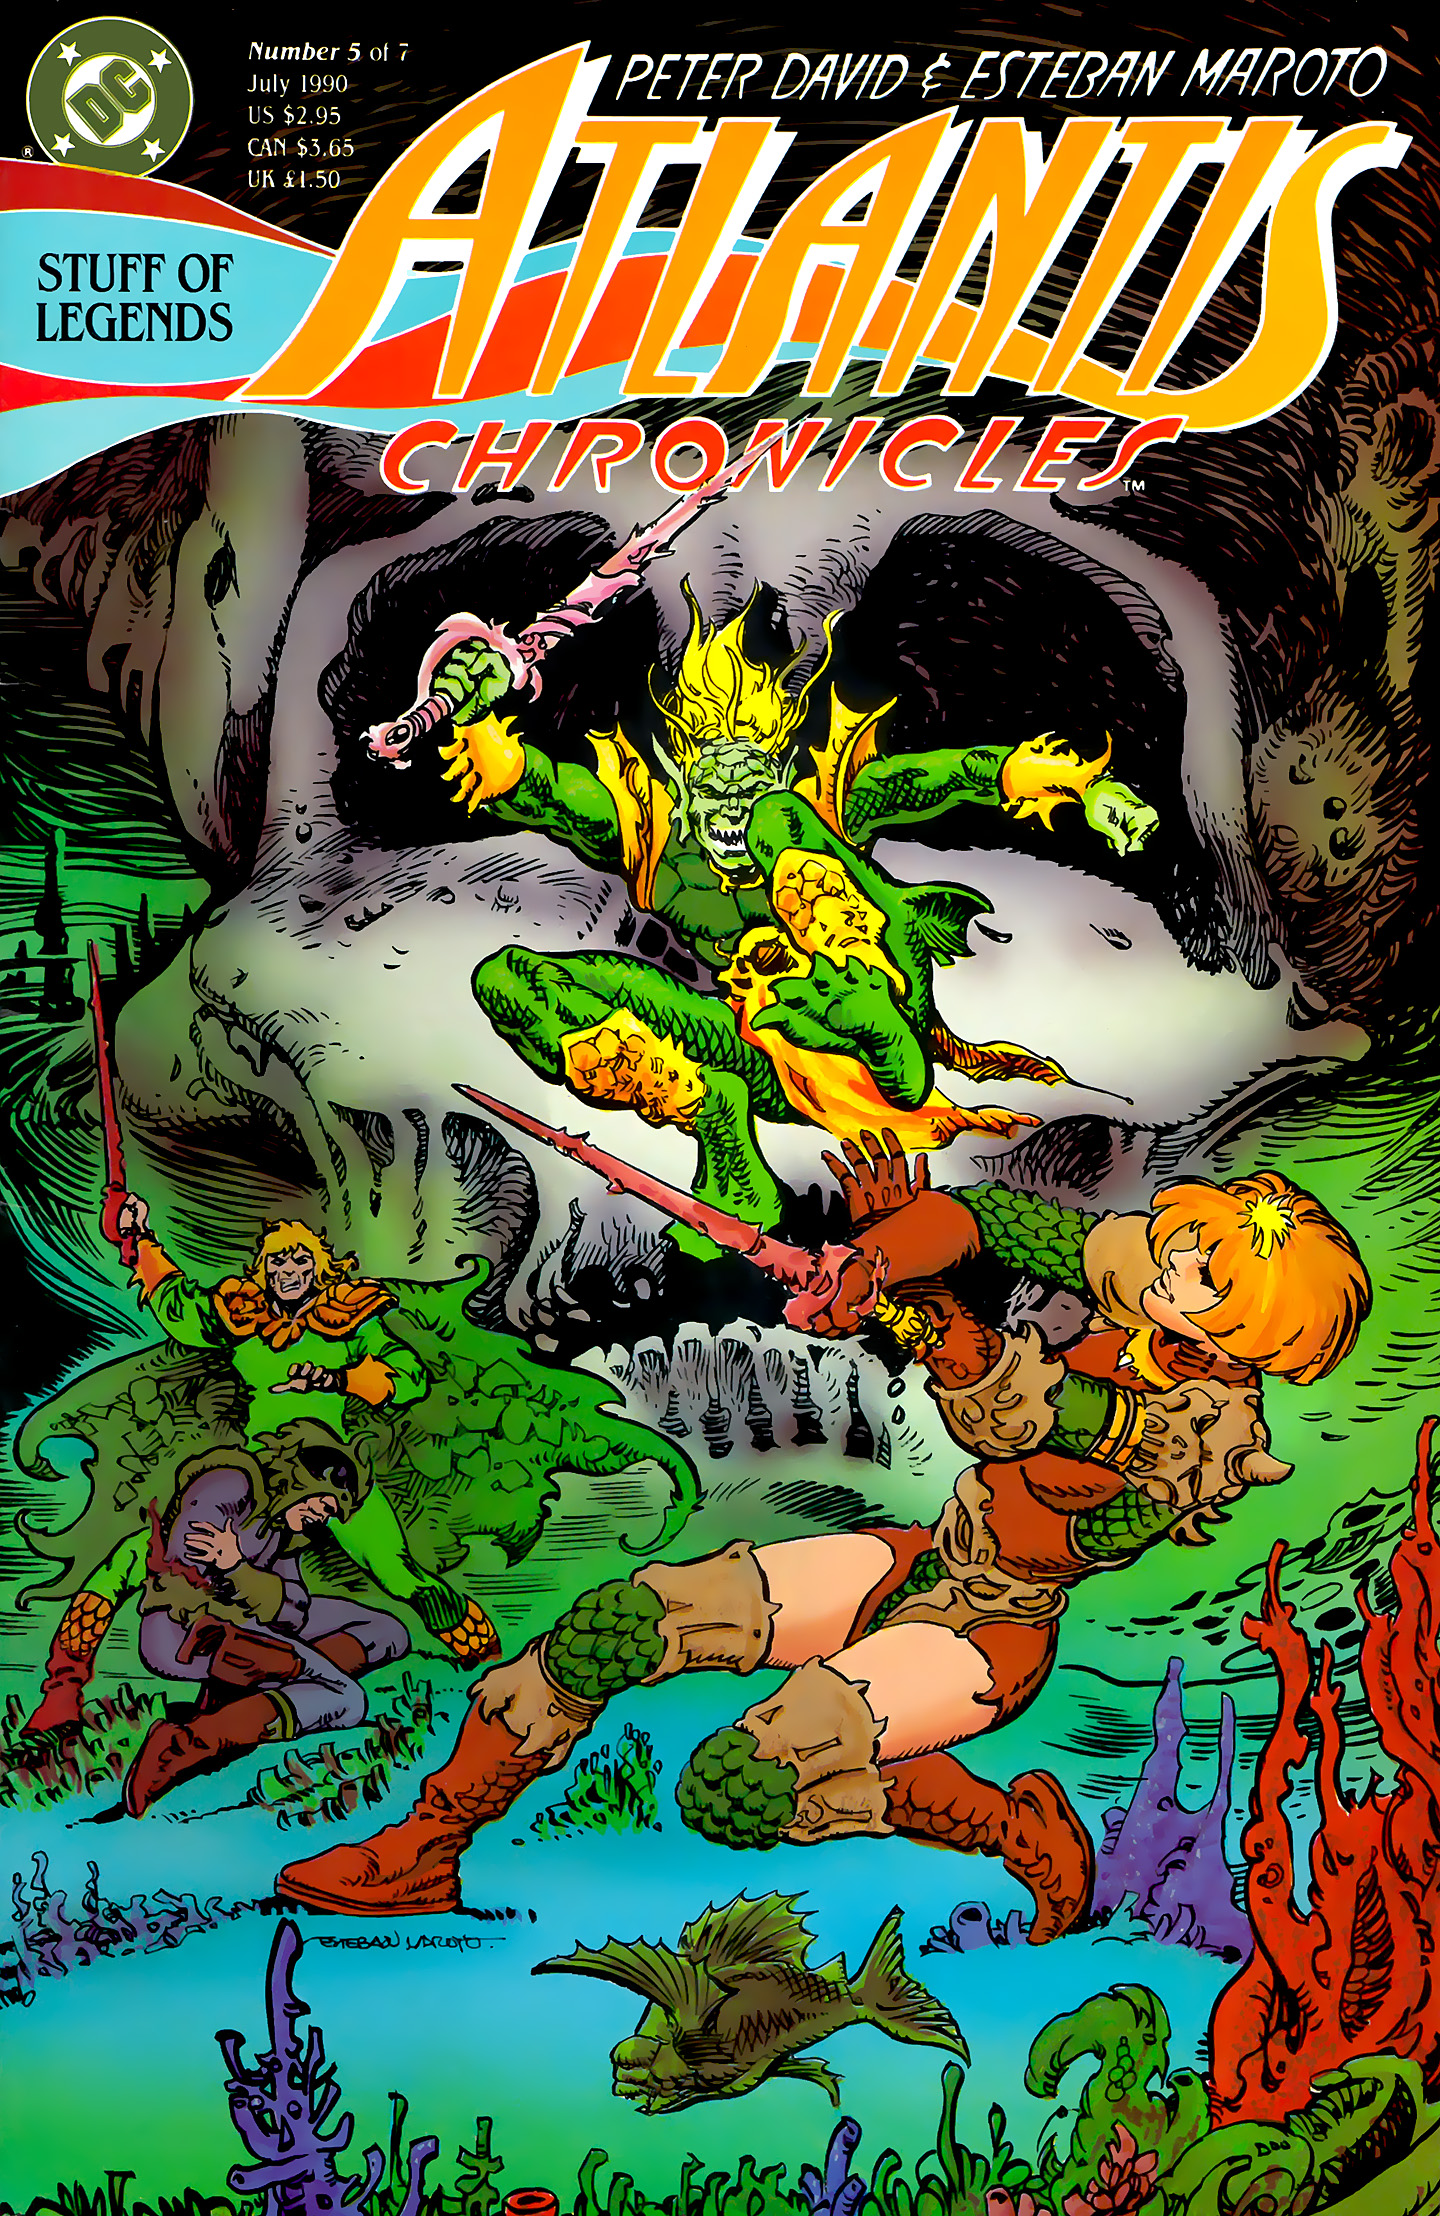 Read online Atlantis Chronicles comic -  Issue #5 - 1